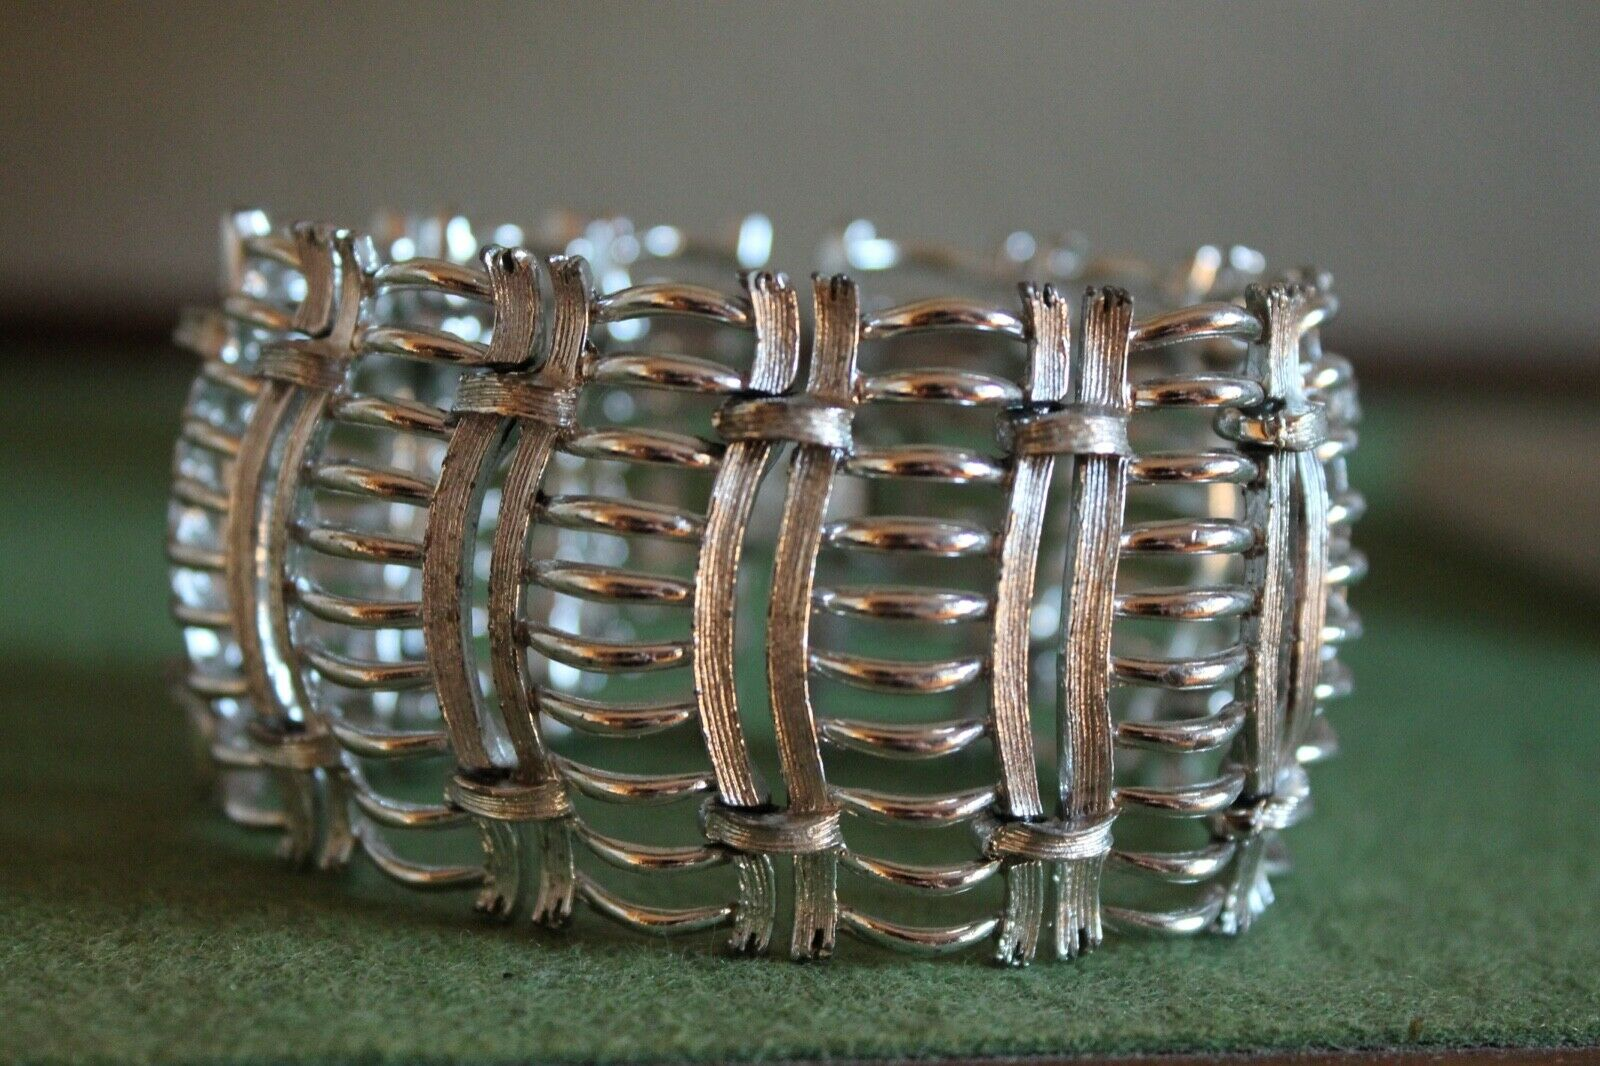 Lisner 1950s Large Crystal Bracelet and Screw Earrings Signed Authentic Jewellery Set